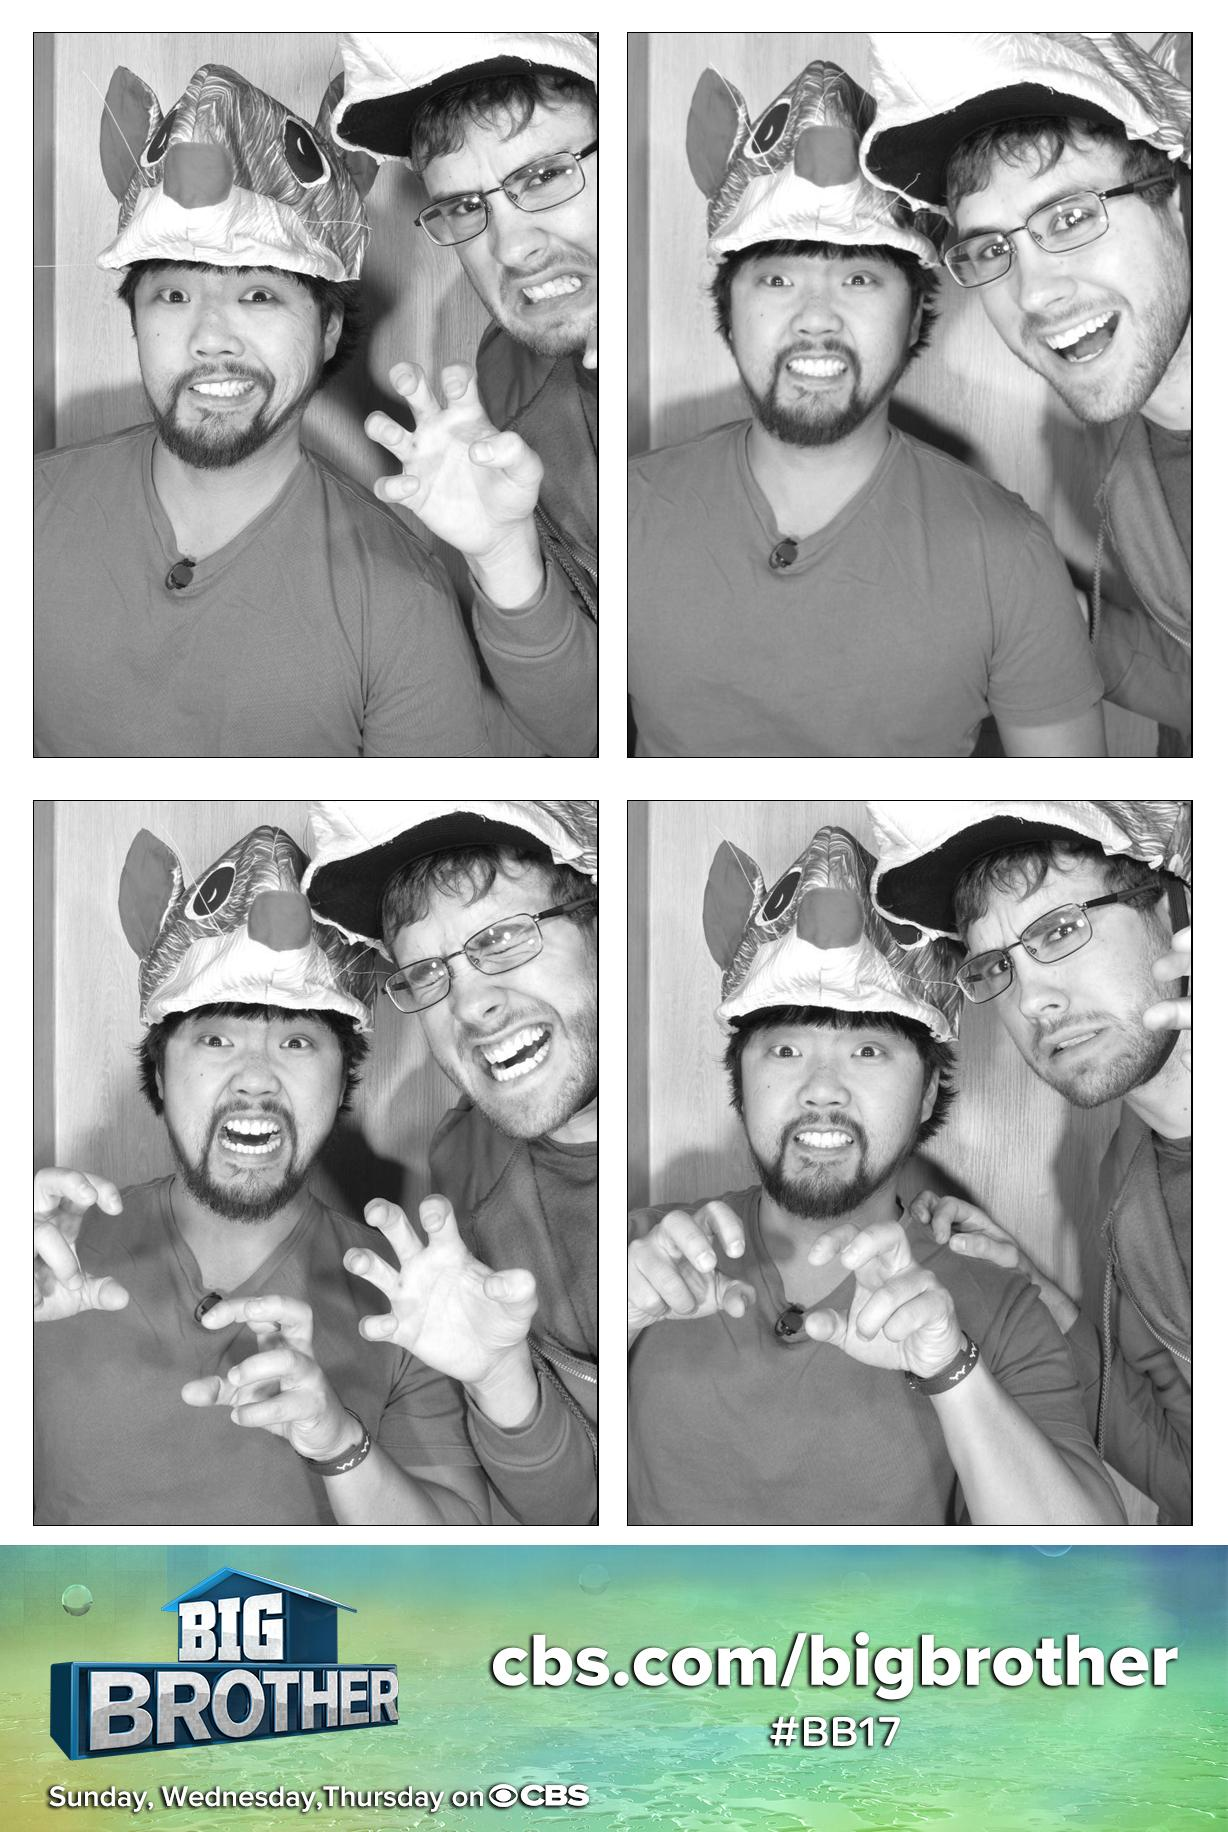 Steve and James get down with their fierce selves